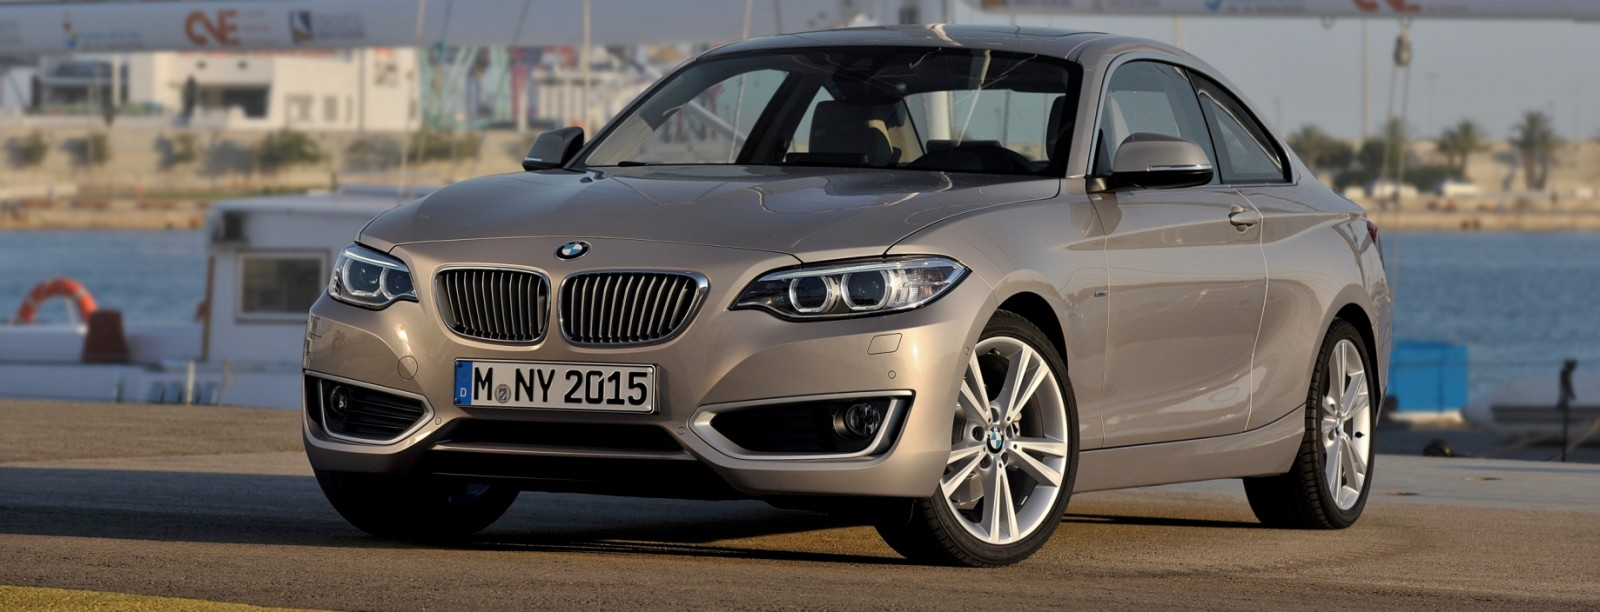 2014 BMW 228i and M235i 55